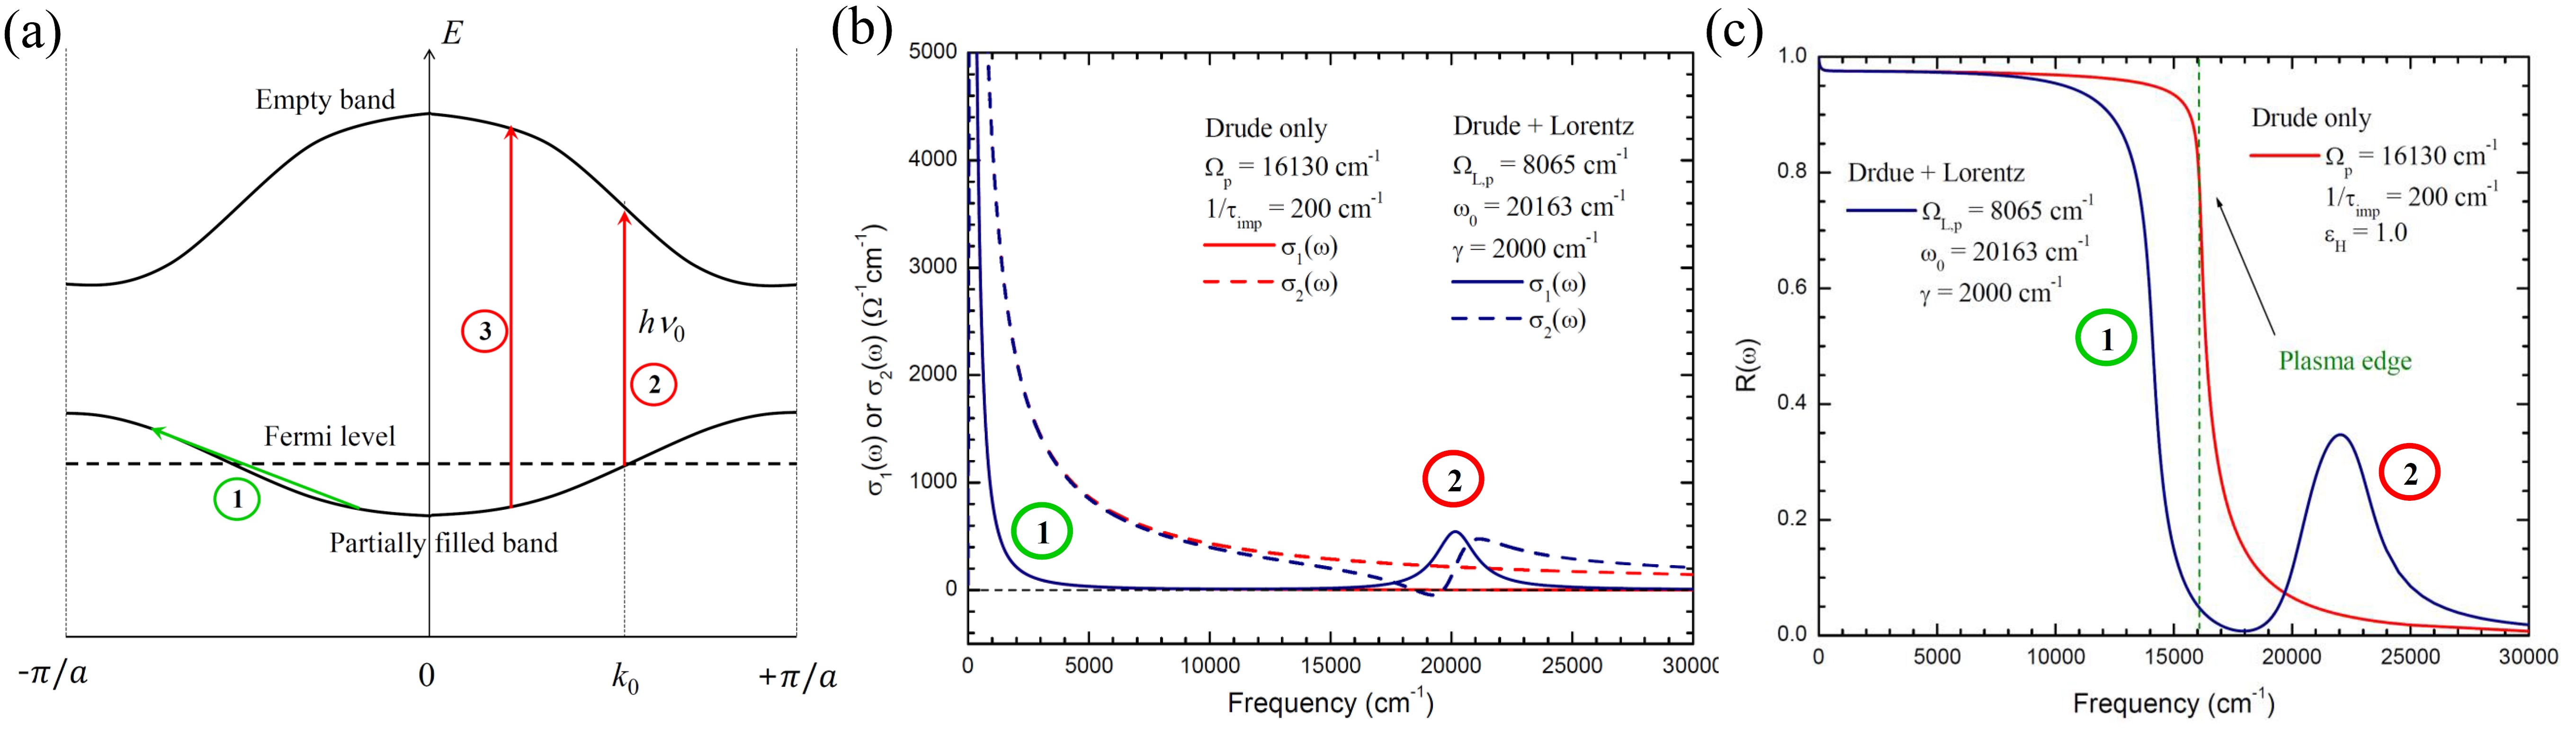 Fig. 6. (a) Schematic energy band for a metal, (b) Optical conductivity for Drude and Drude+Lorentz cases, and (c) Reflectance spectra for Drude and Drude+Lorentz cases.